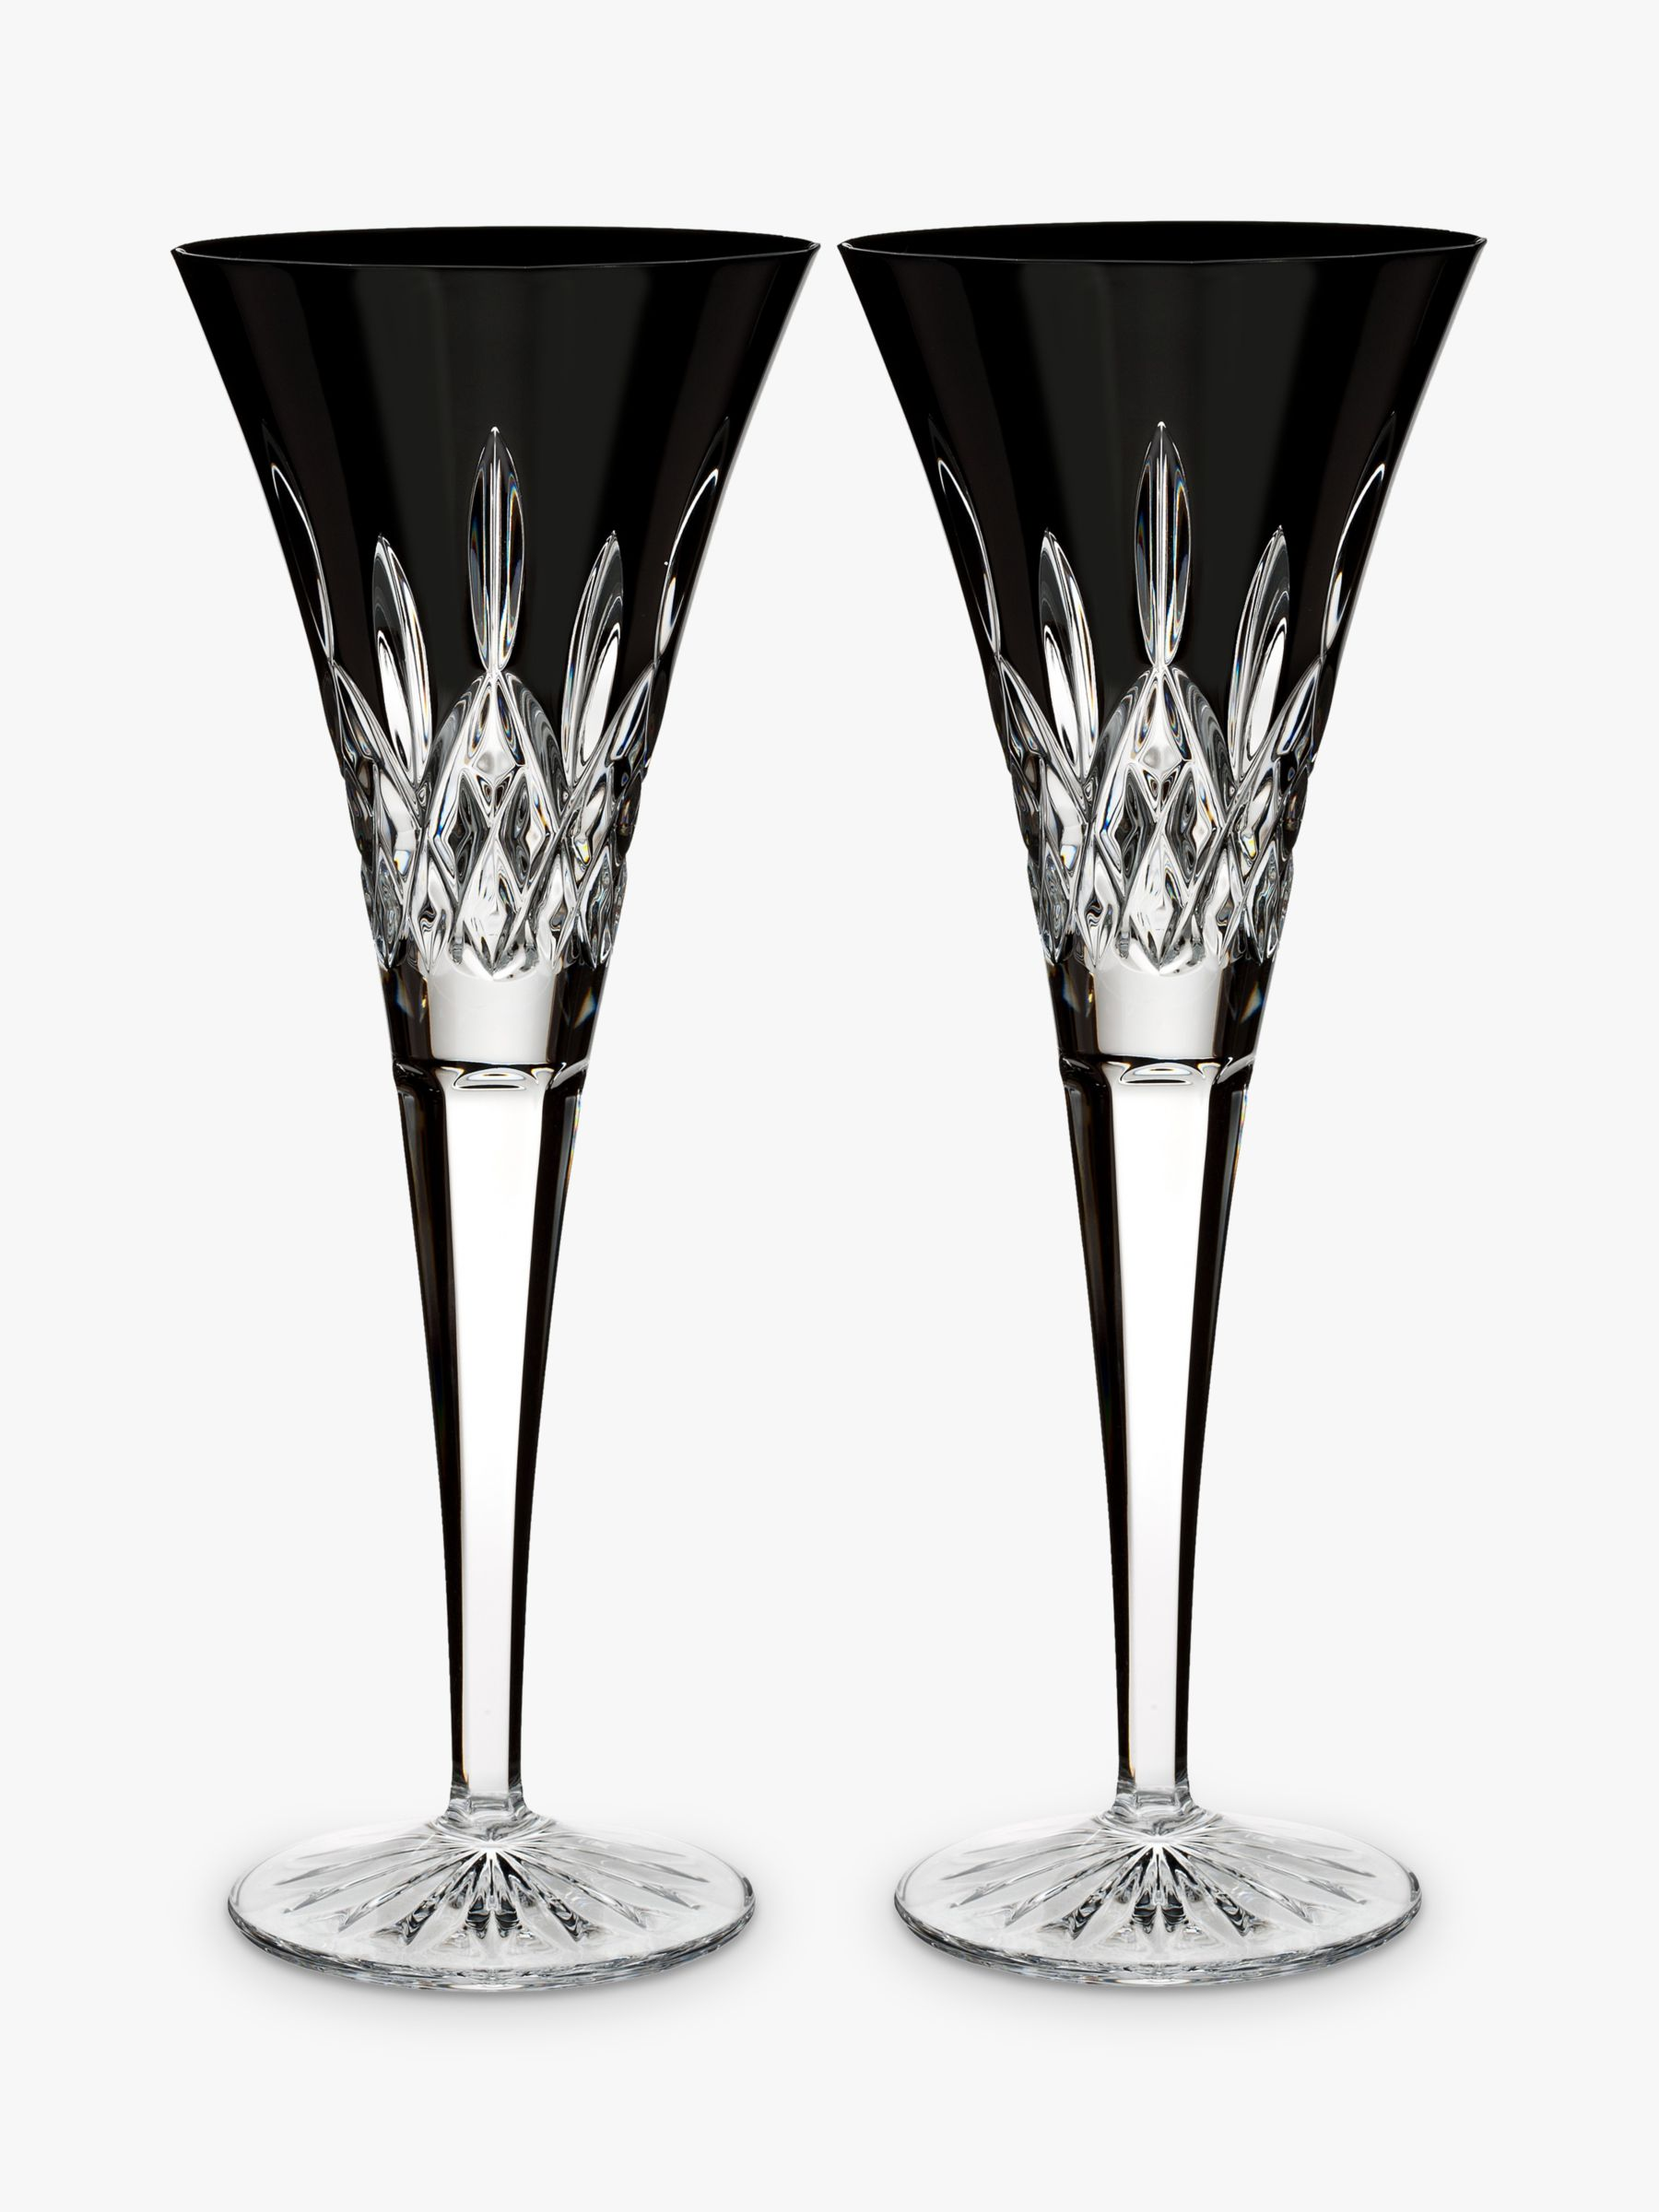 Waterford Waterford 'Lismore Pops' Cut Crystal Toasting Flute, Set of 2, 160ml, Black